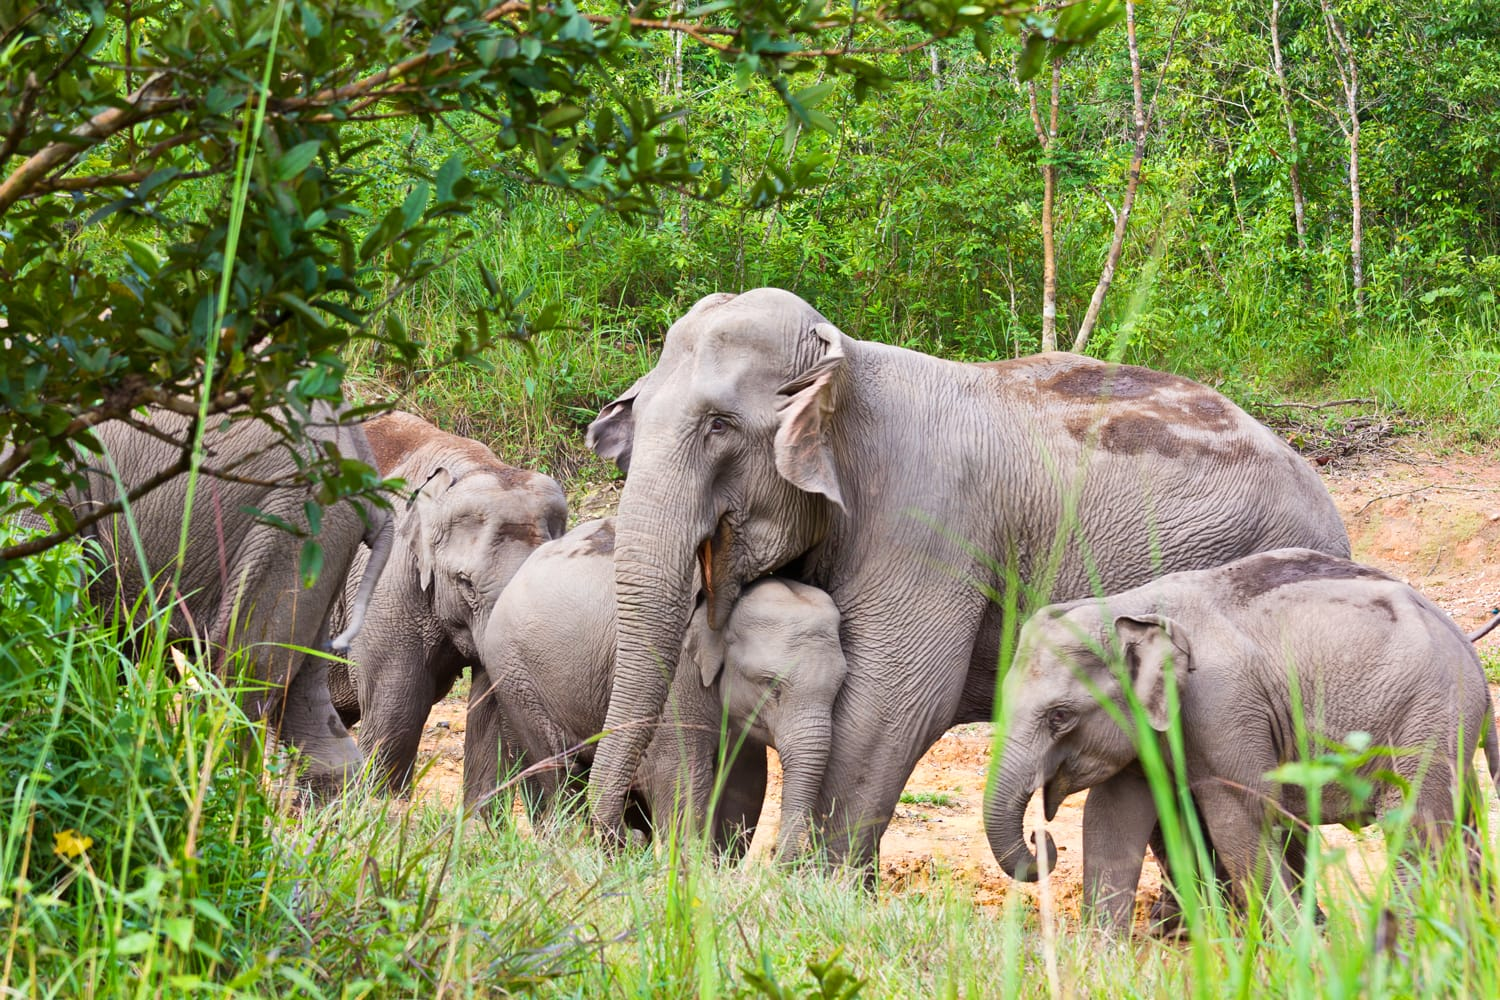 Elephants at Kui Buri National Park in Thailand